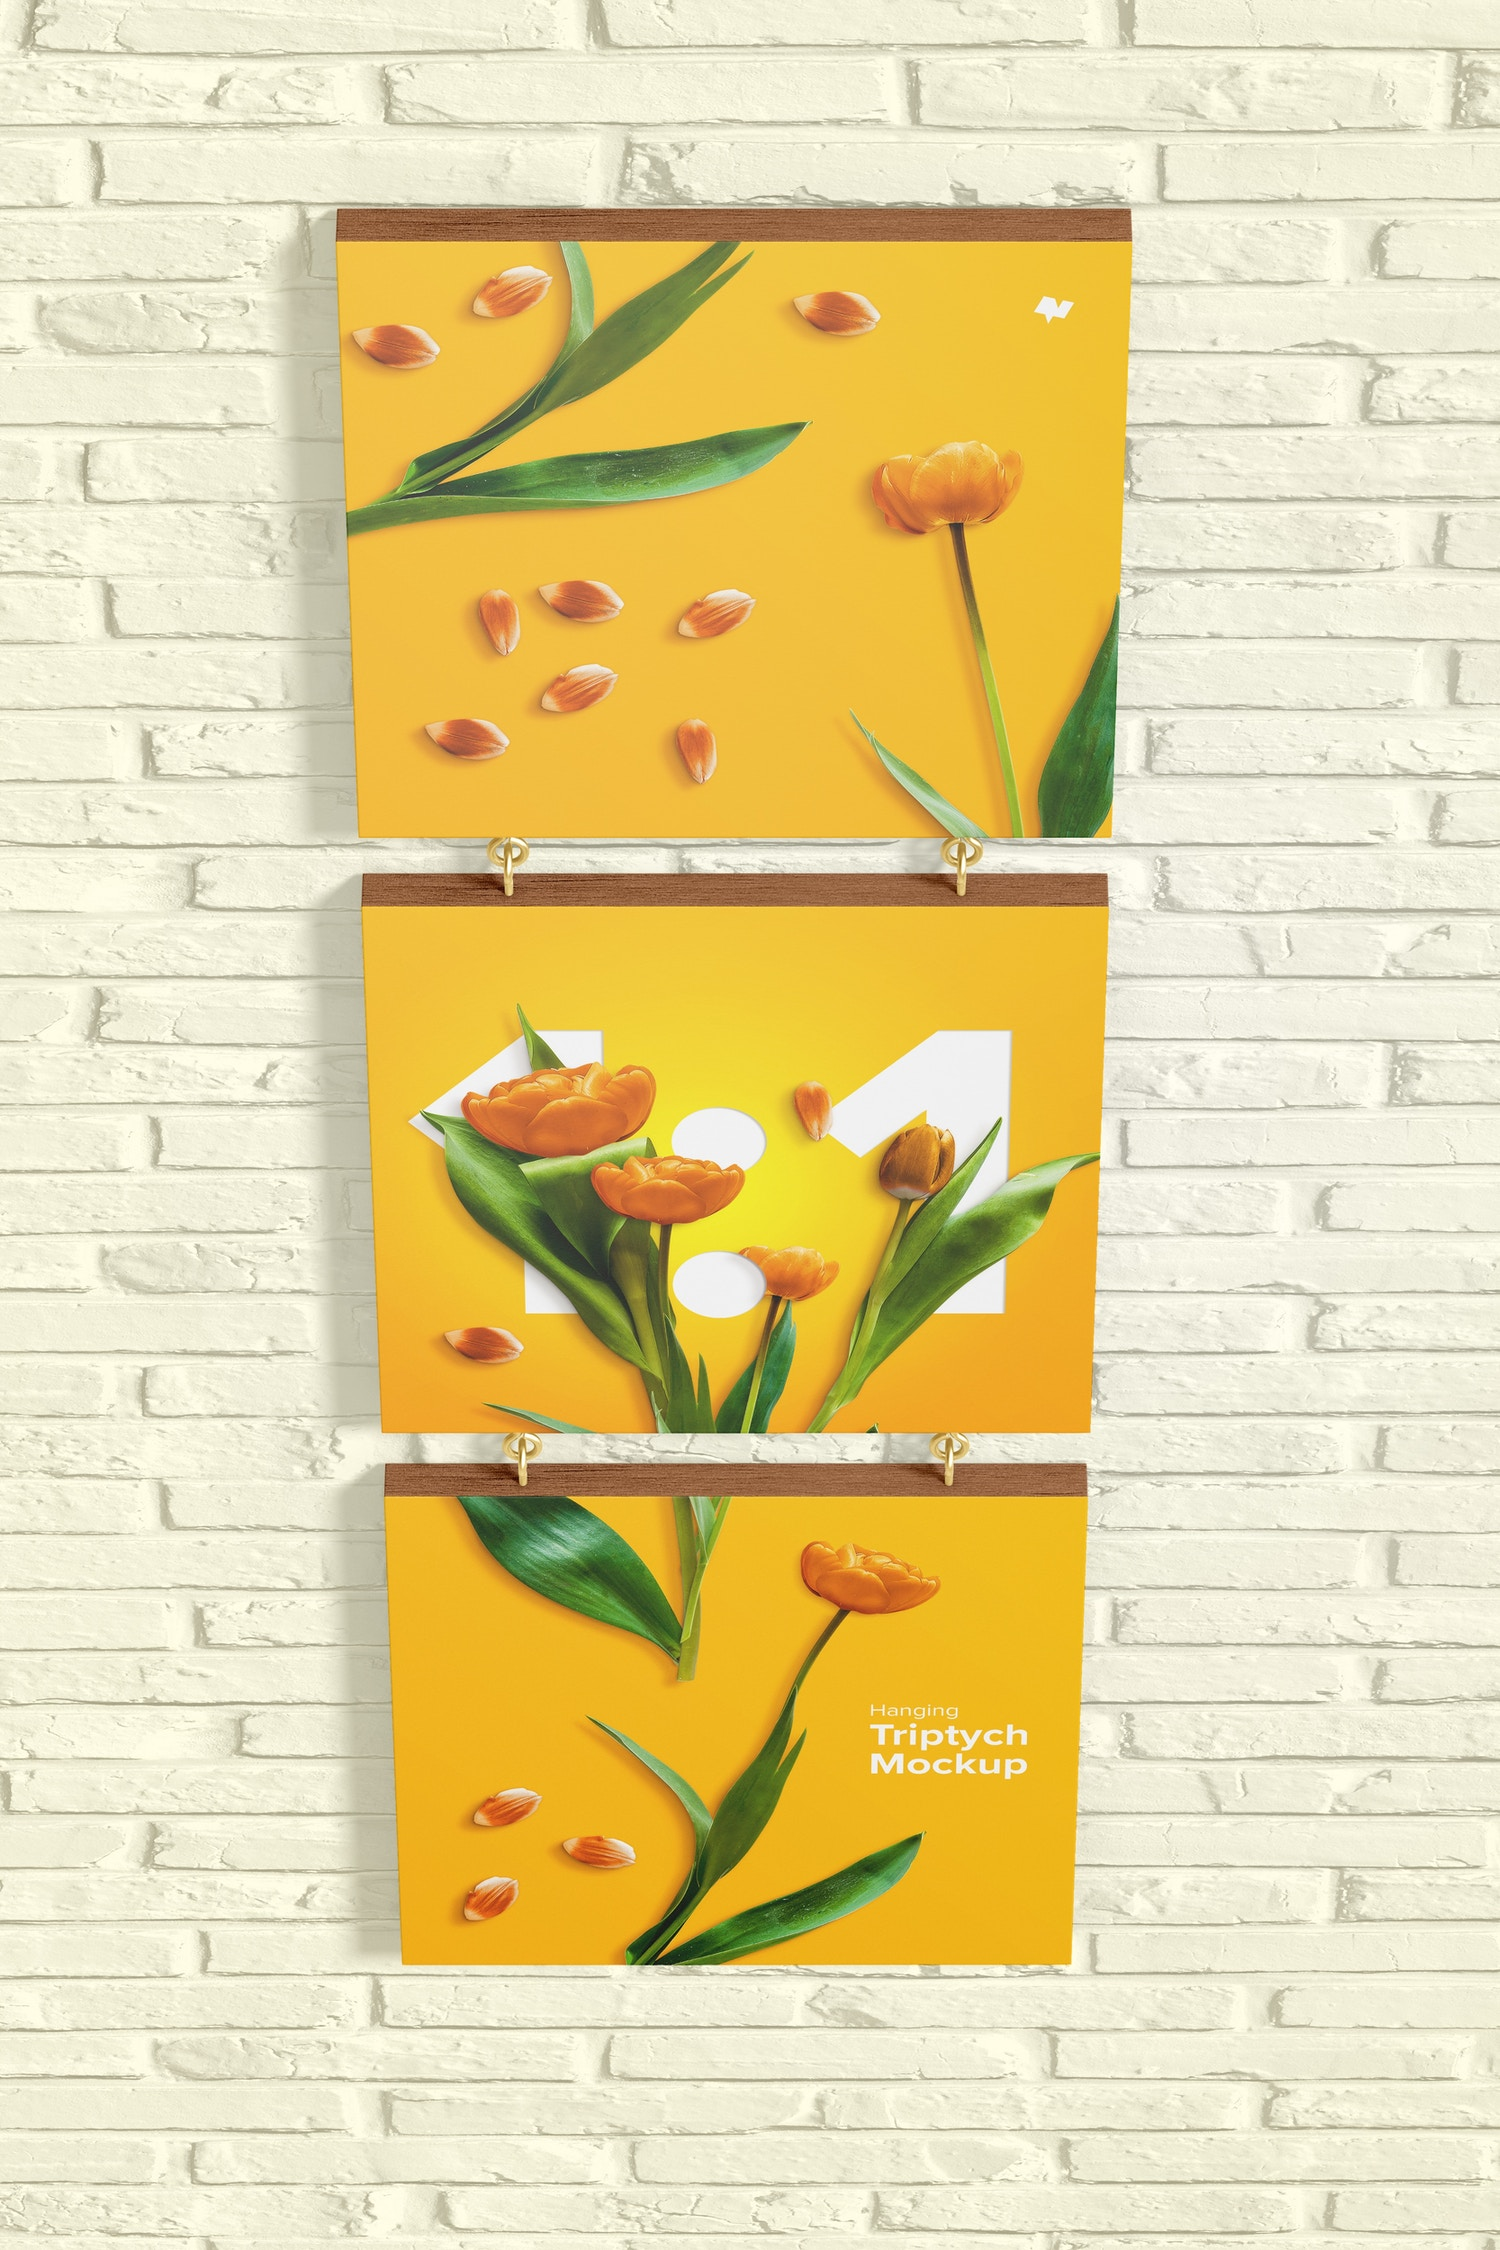 1:1 Hanging Triptych Mockup, Top View